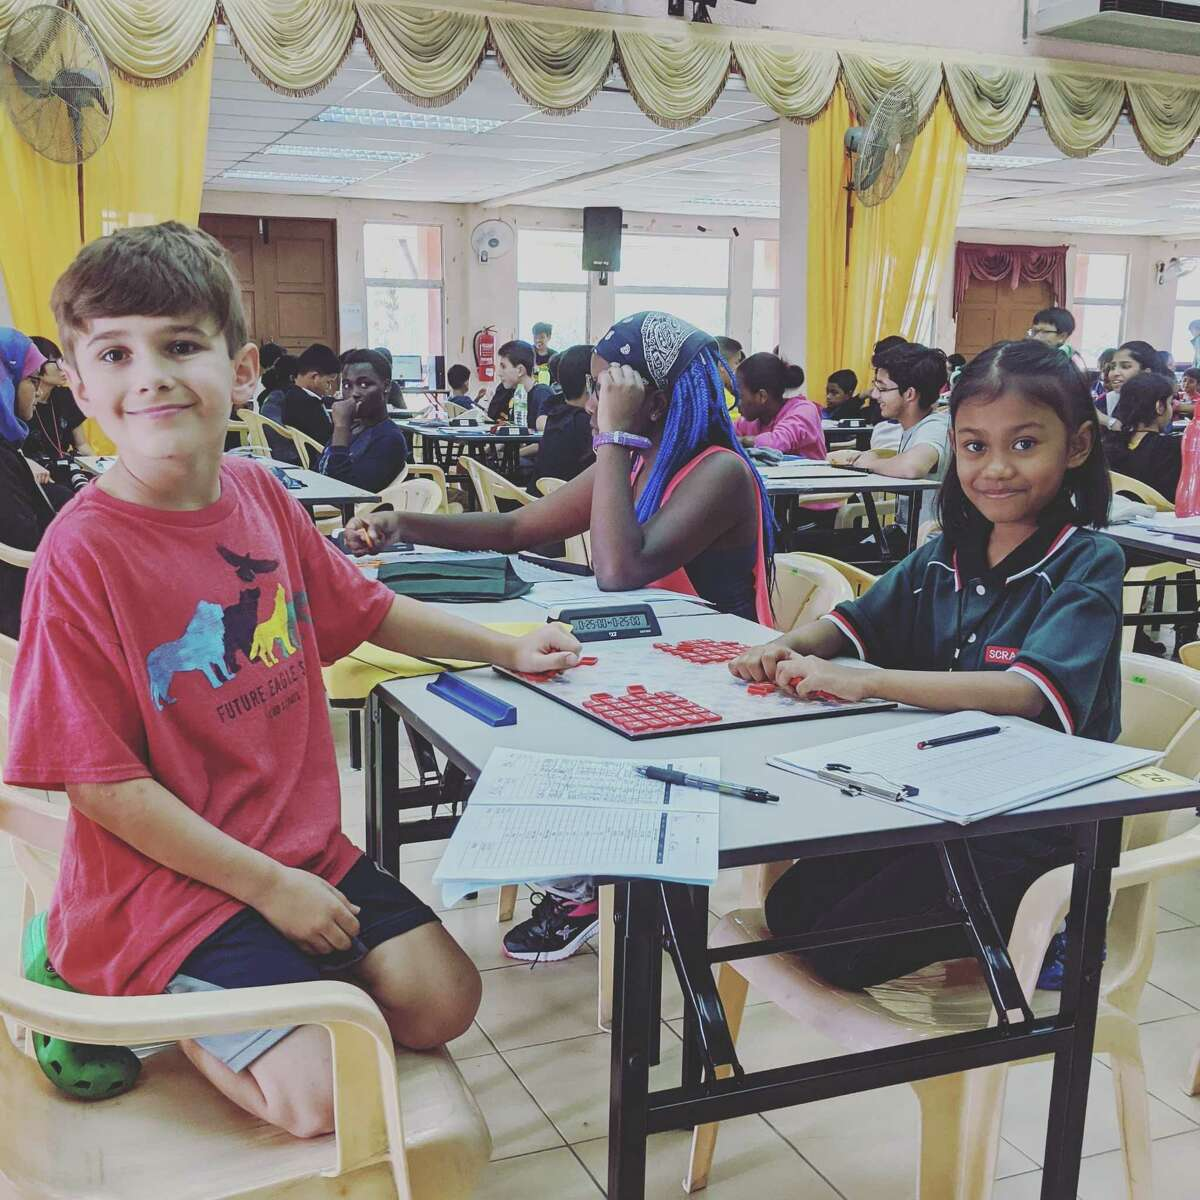 Ricky Rodriguez, 10, poses for a photo during the World Youth Scrabble Championship in Malaysia.